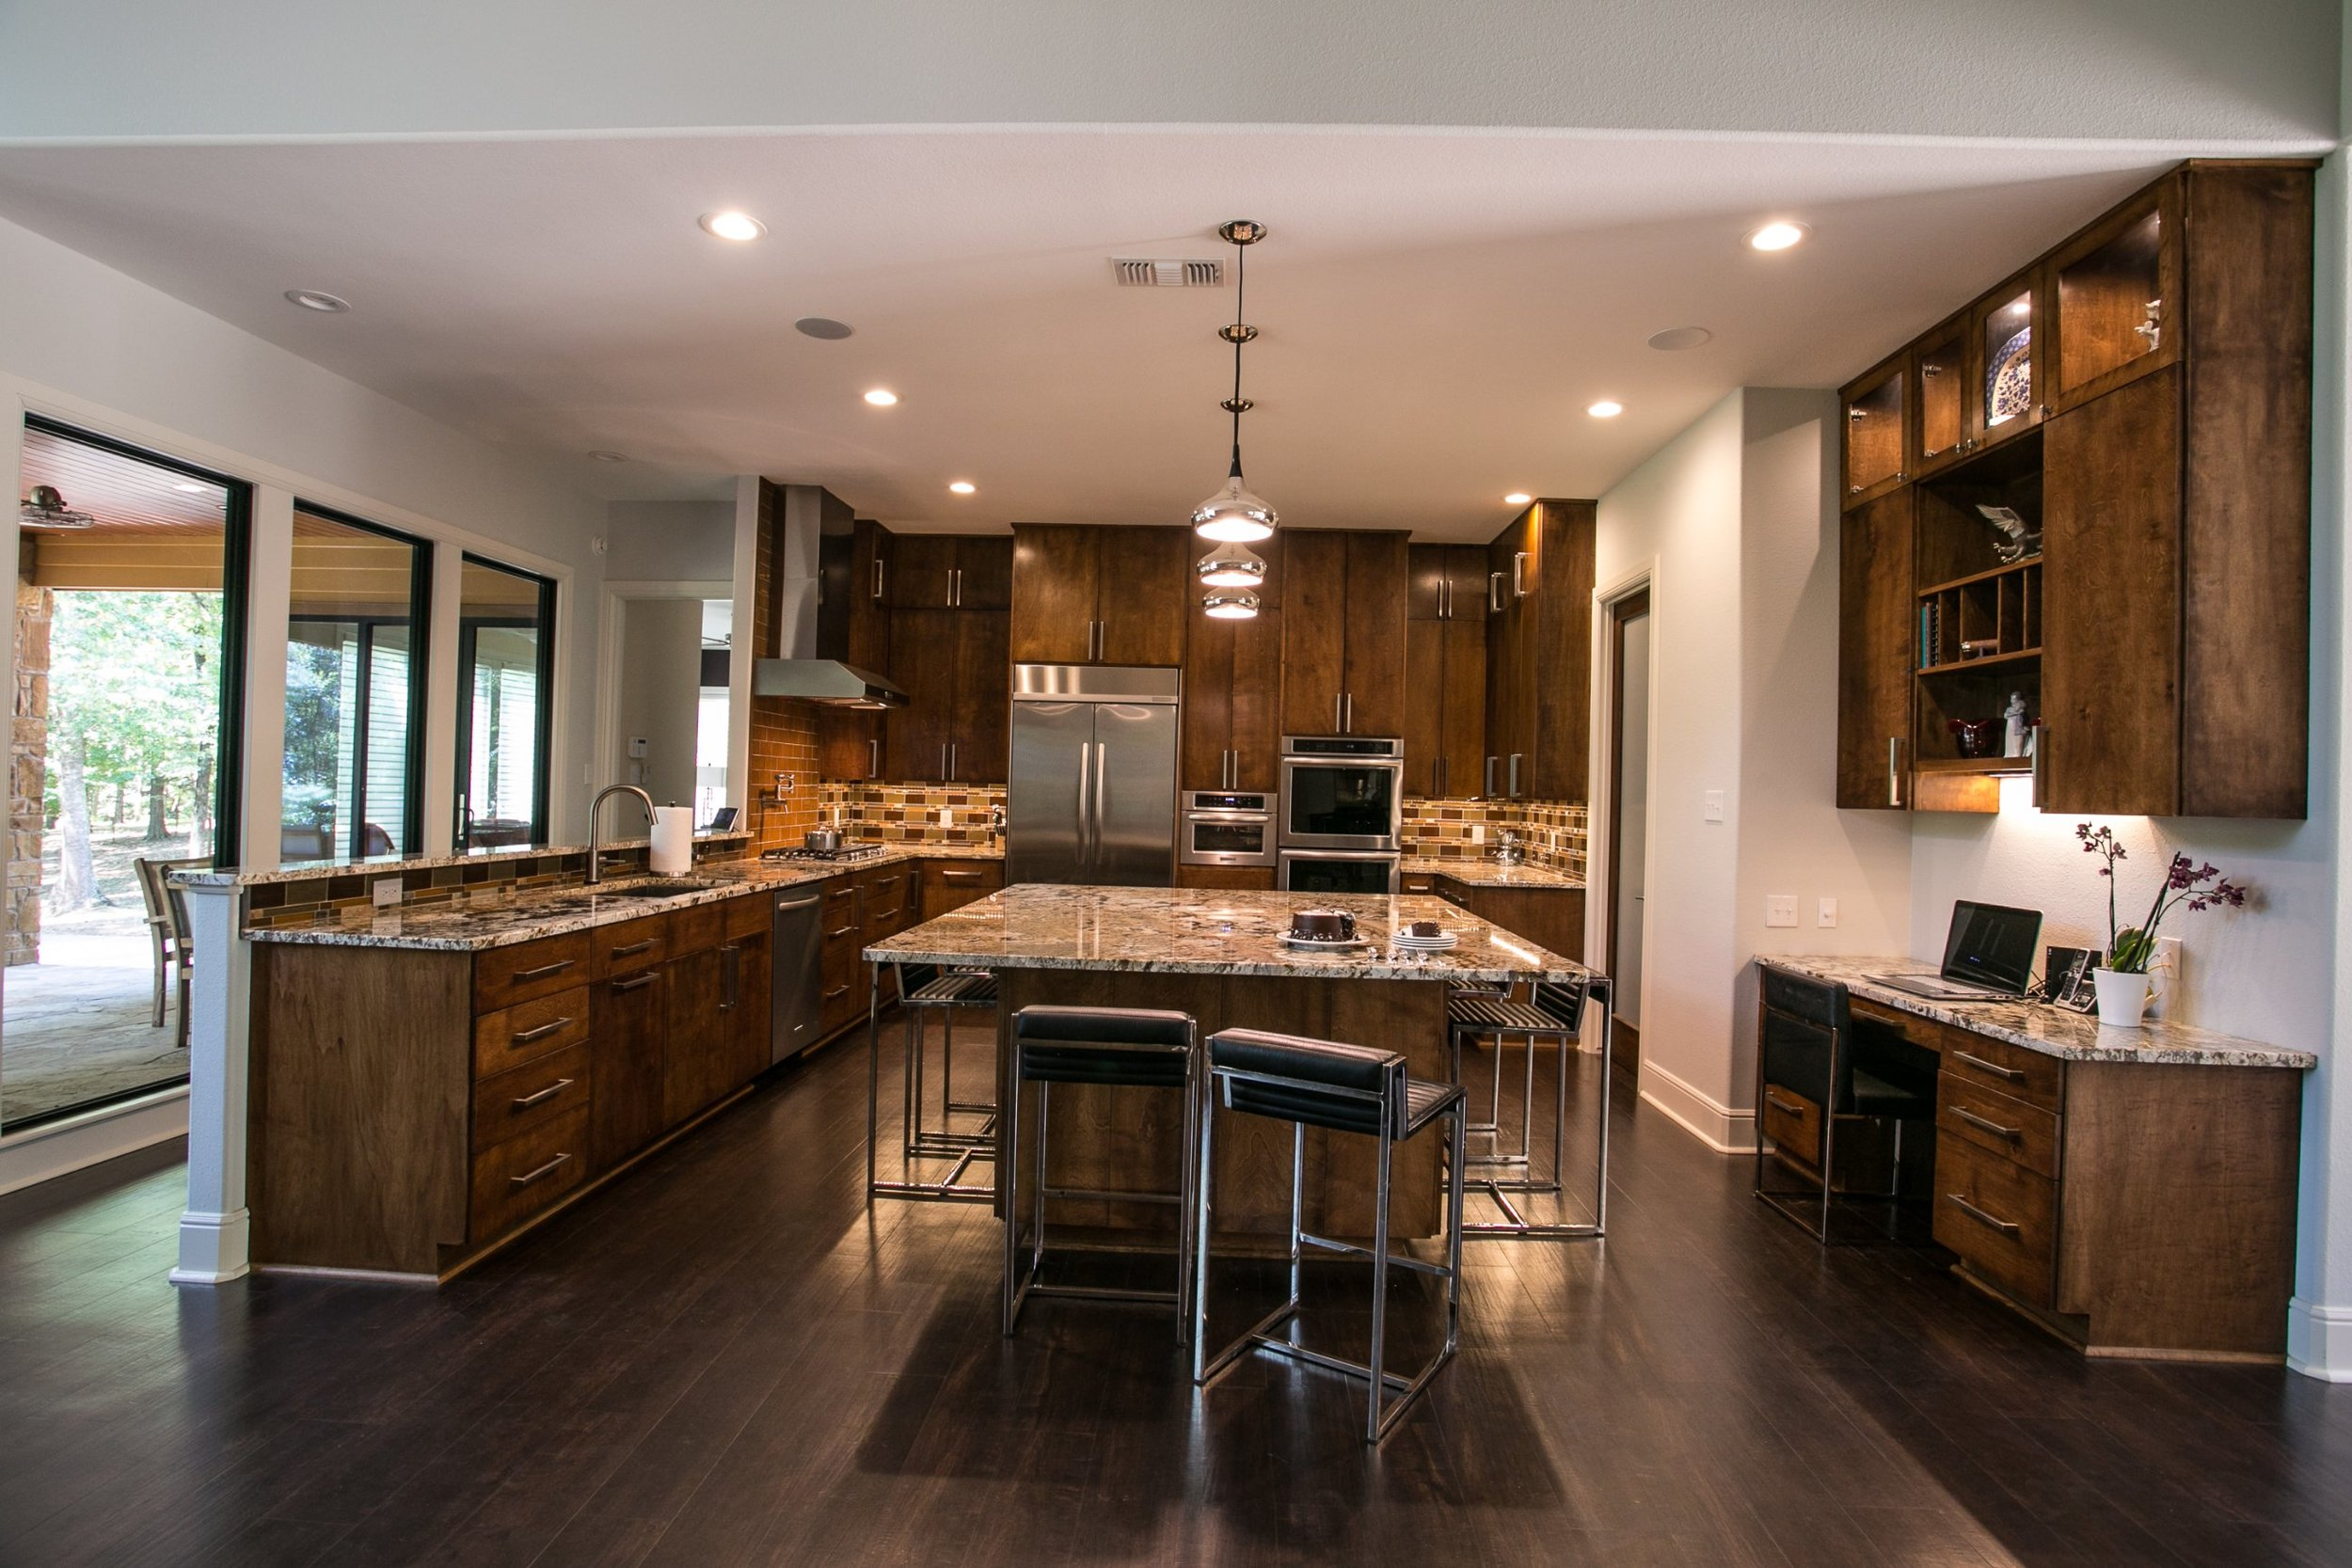 open kitchen plan - contemporary remodel in Nacogdoches, Texas